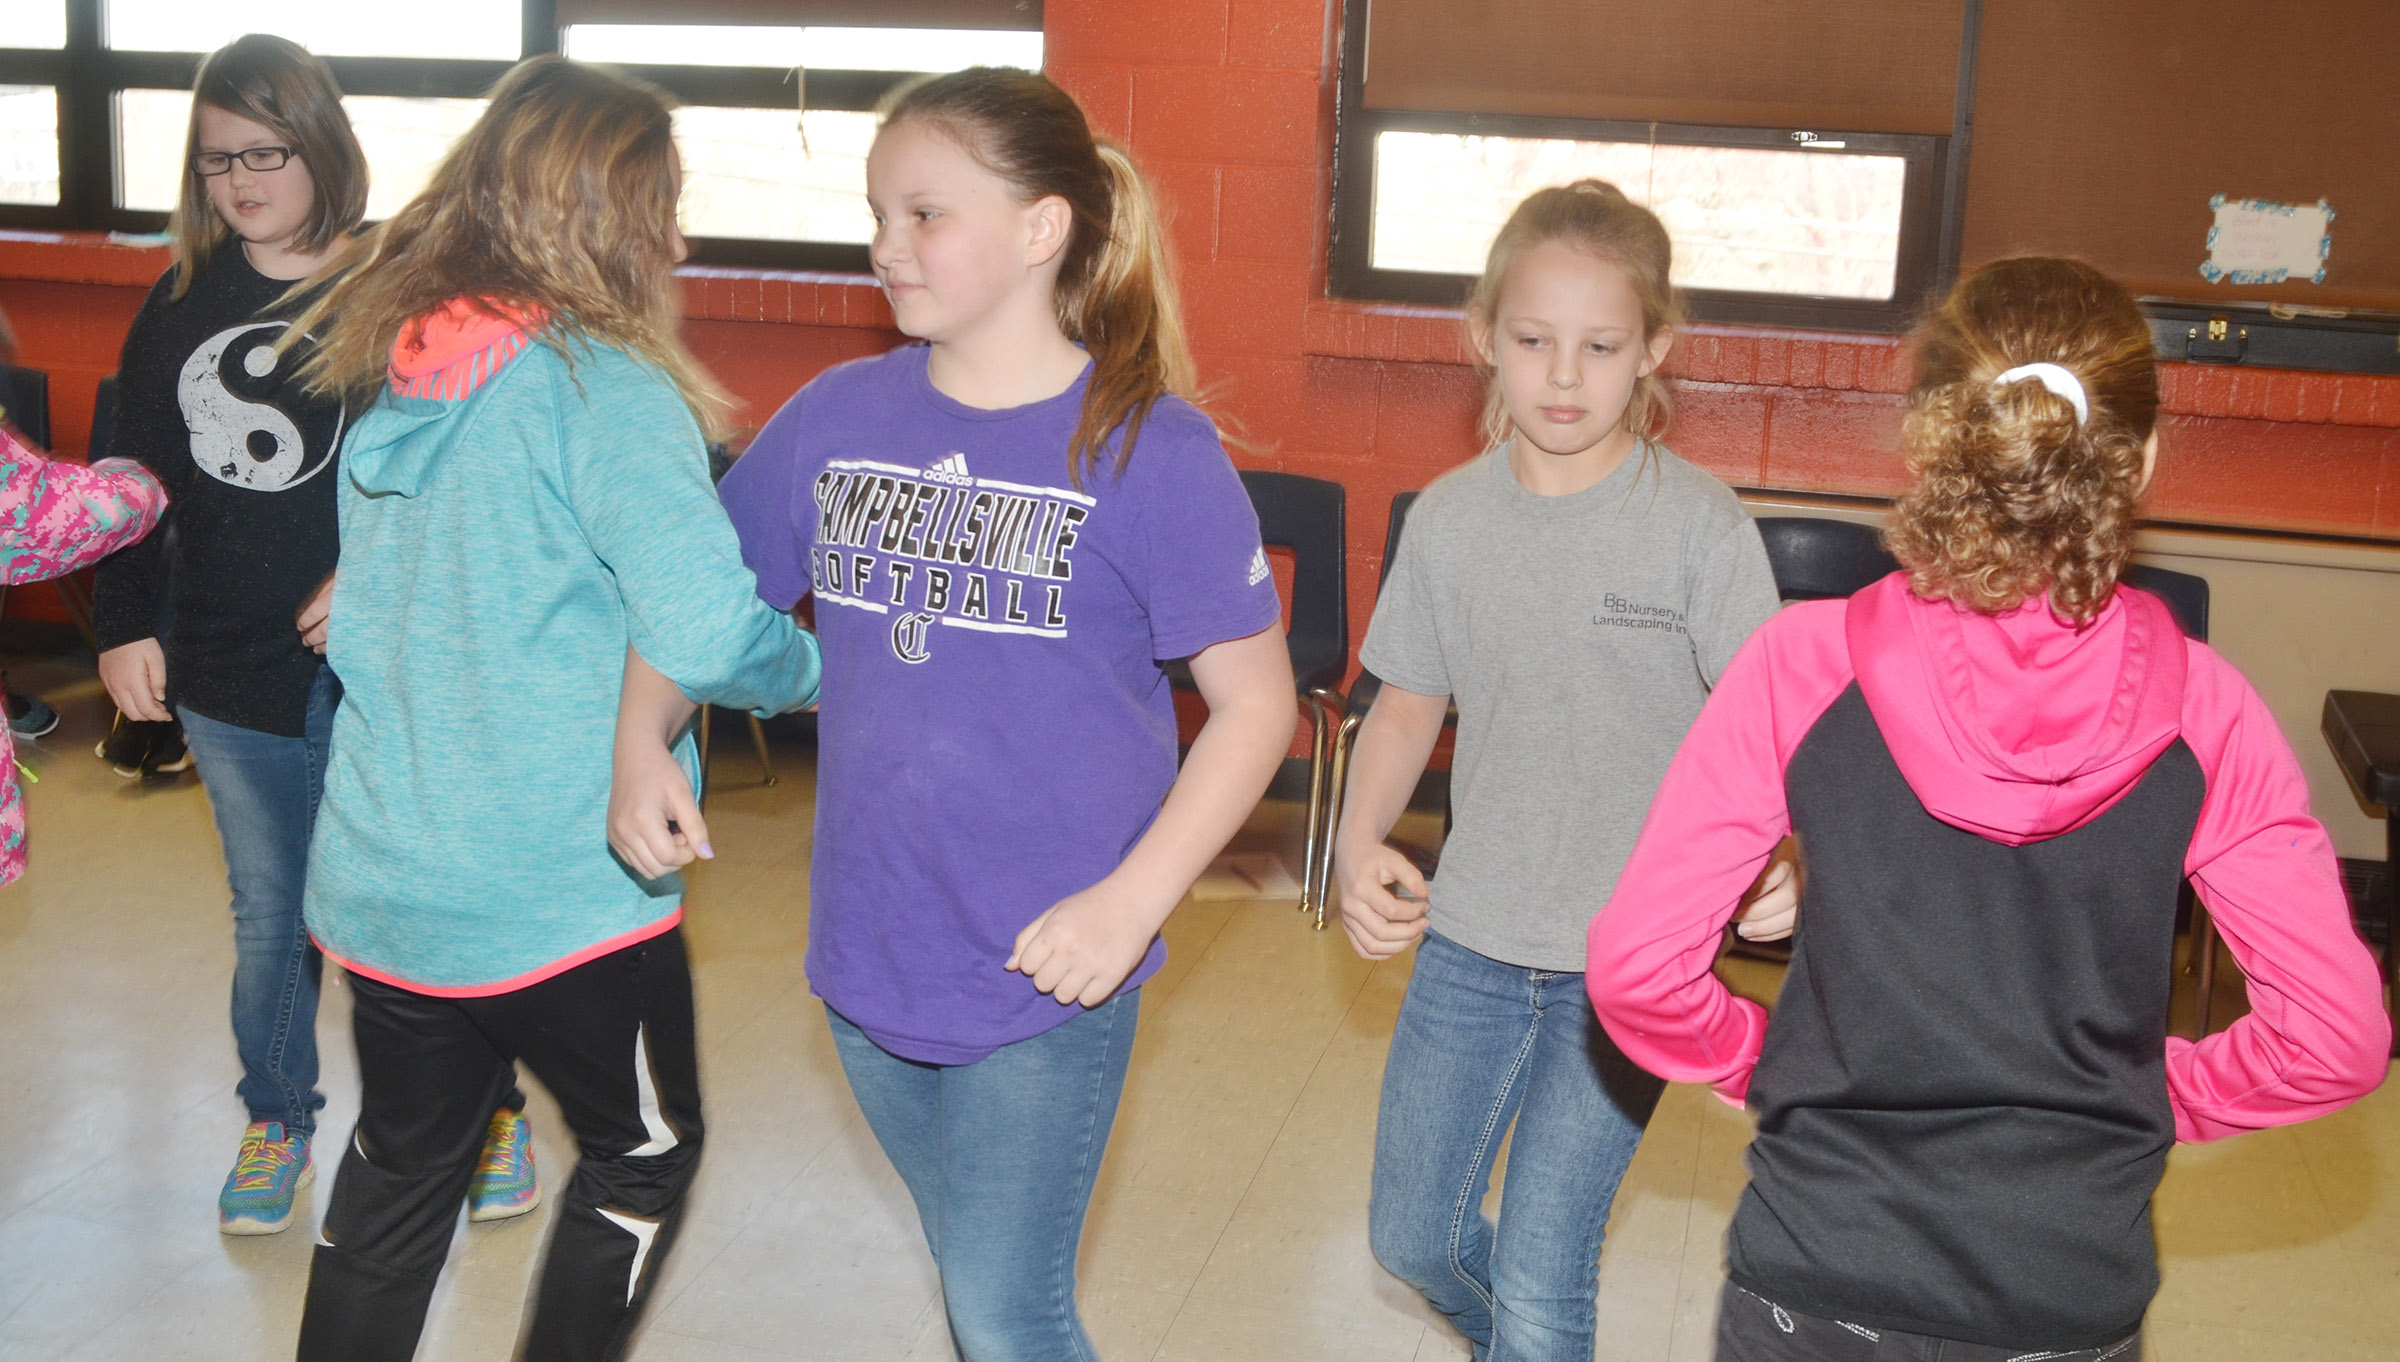 CMS seventh-grader Graci Crews, center, and sixth-grader Gabrielle Bright dance with their partners.